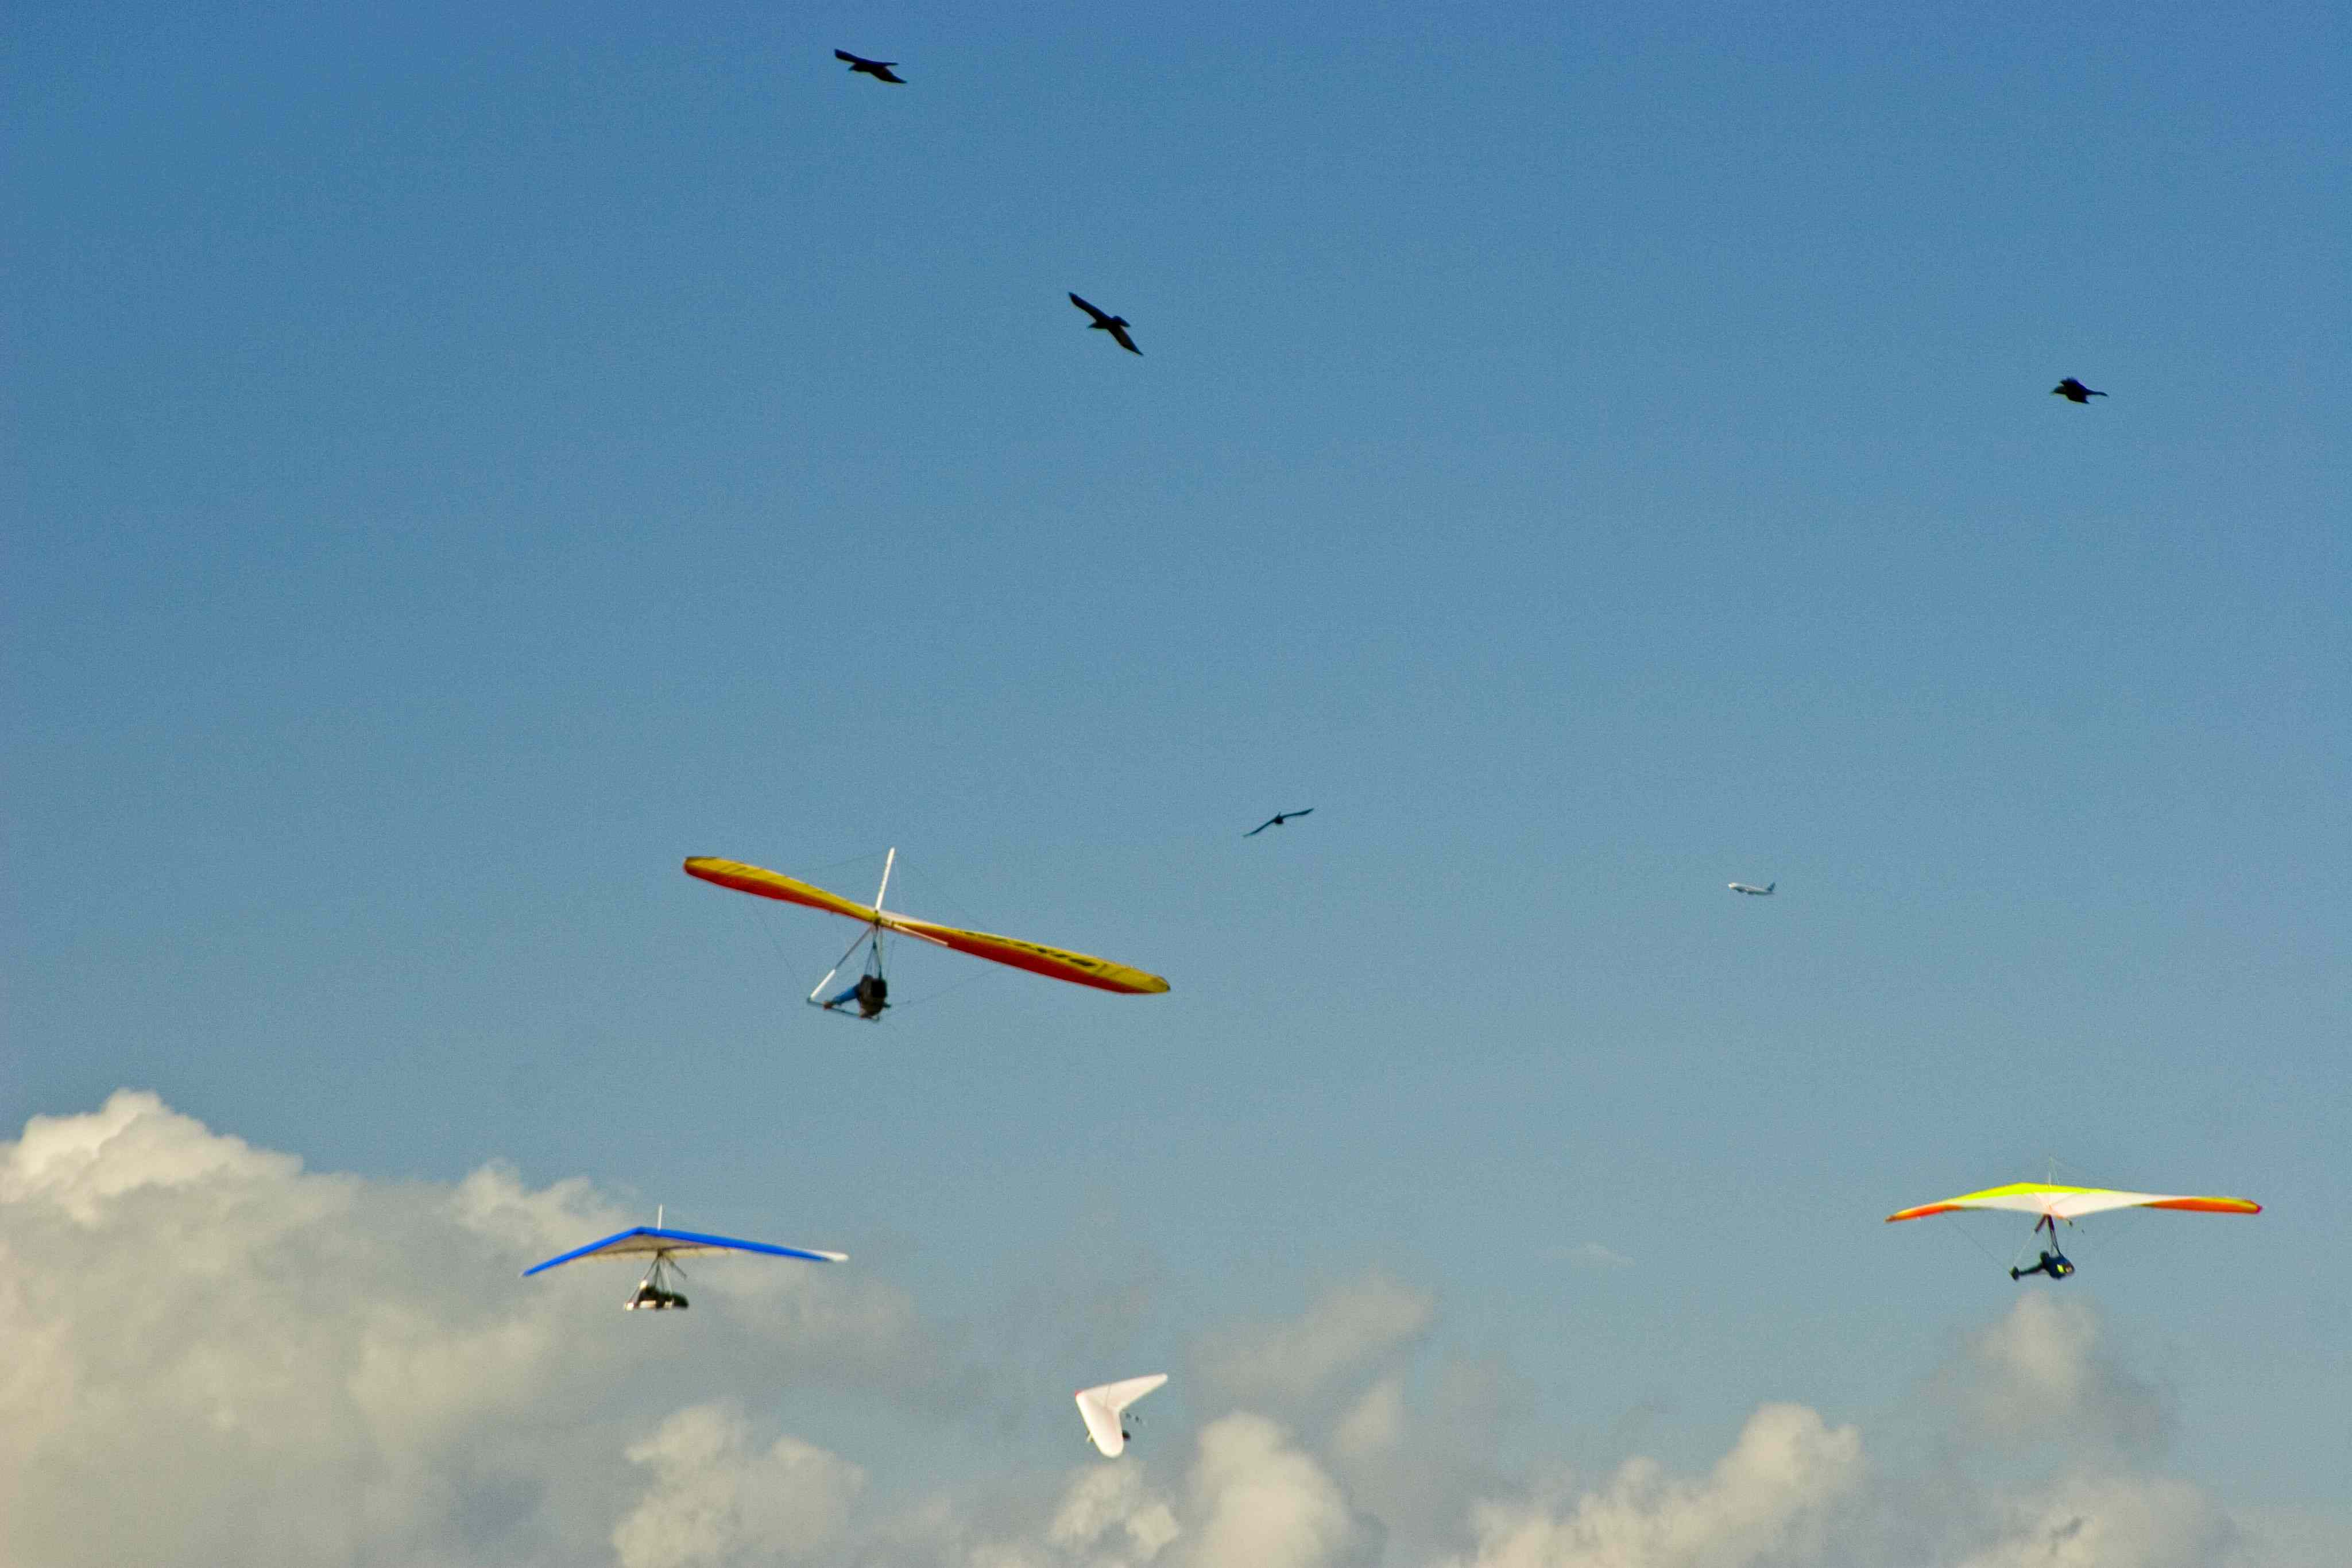 an analysis of fanthropes poems hang gliders in january horticultural show and soothing and awful